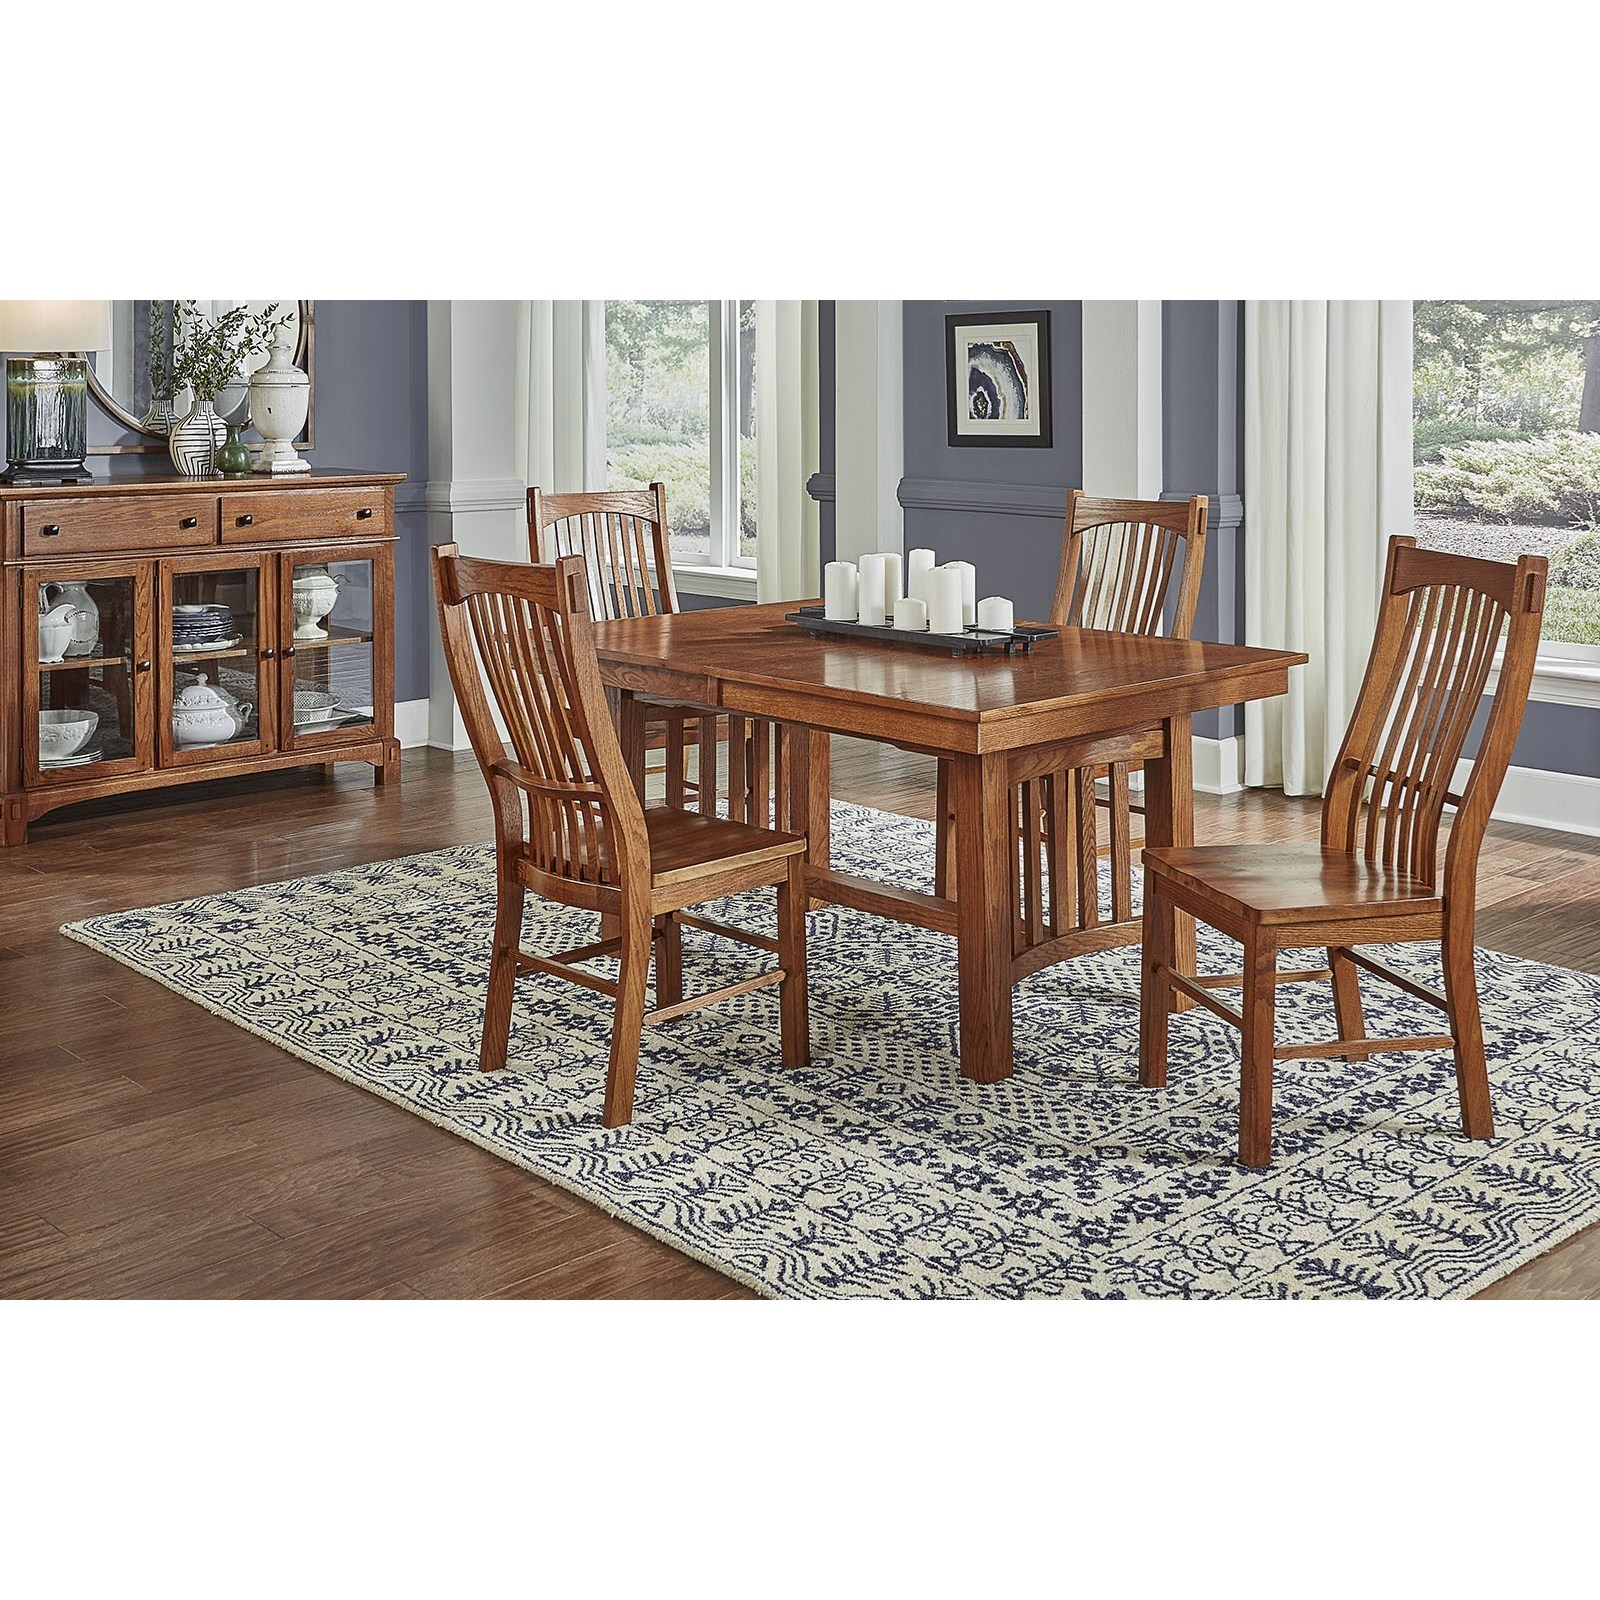 Laurelhurst 5-Piece Dining Table & Chair Set by A-A at Walker's Furniture